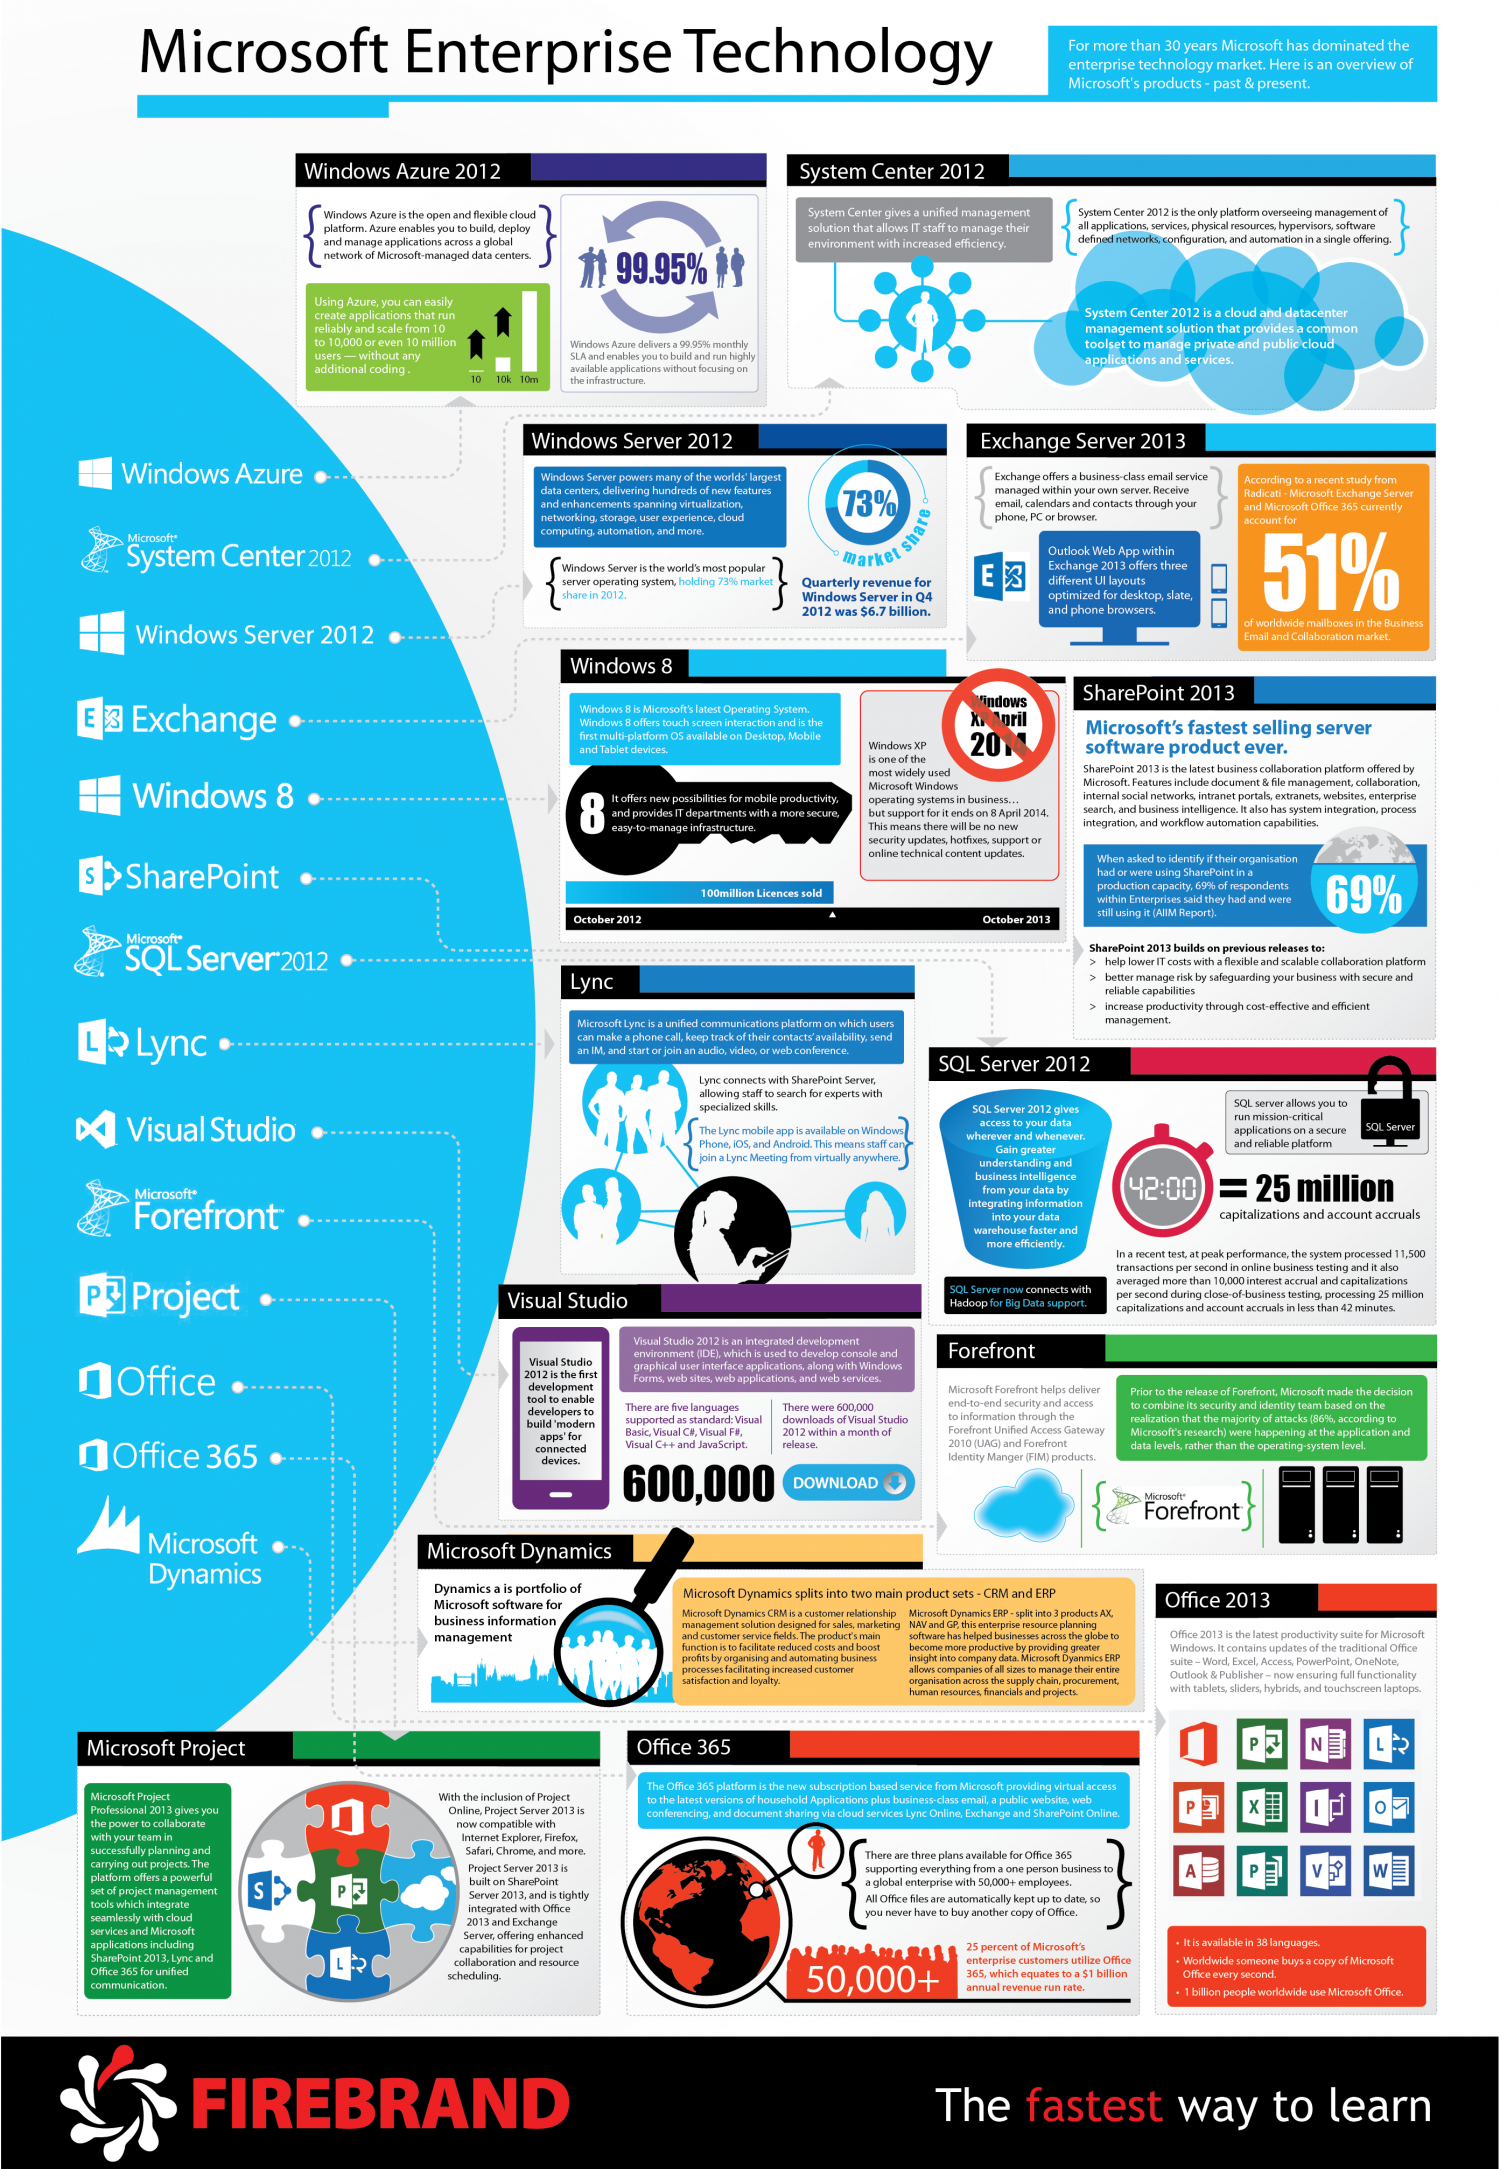 A comprehensive guide to Microsoft's Enterprise Technology Infographic